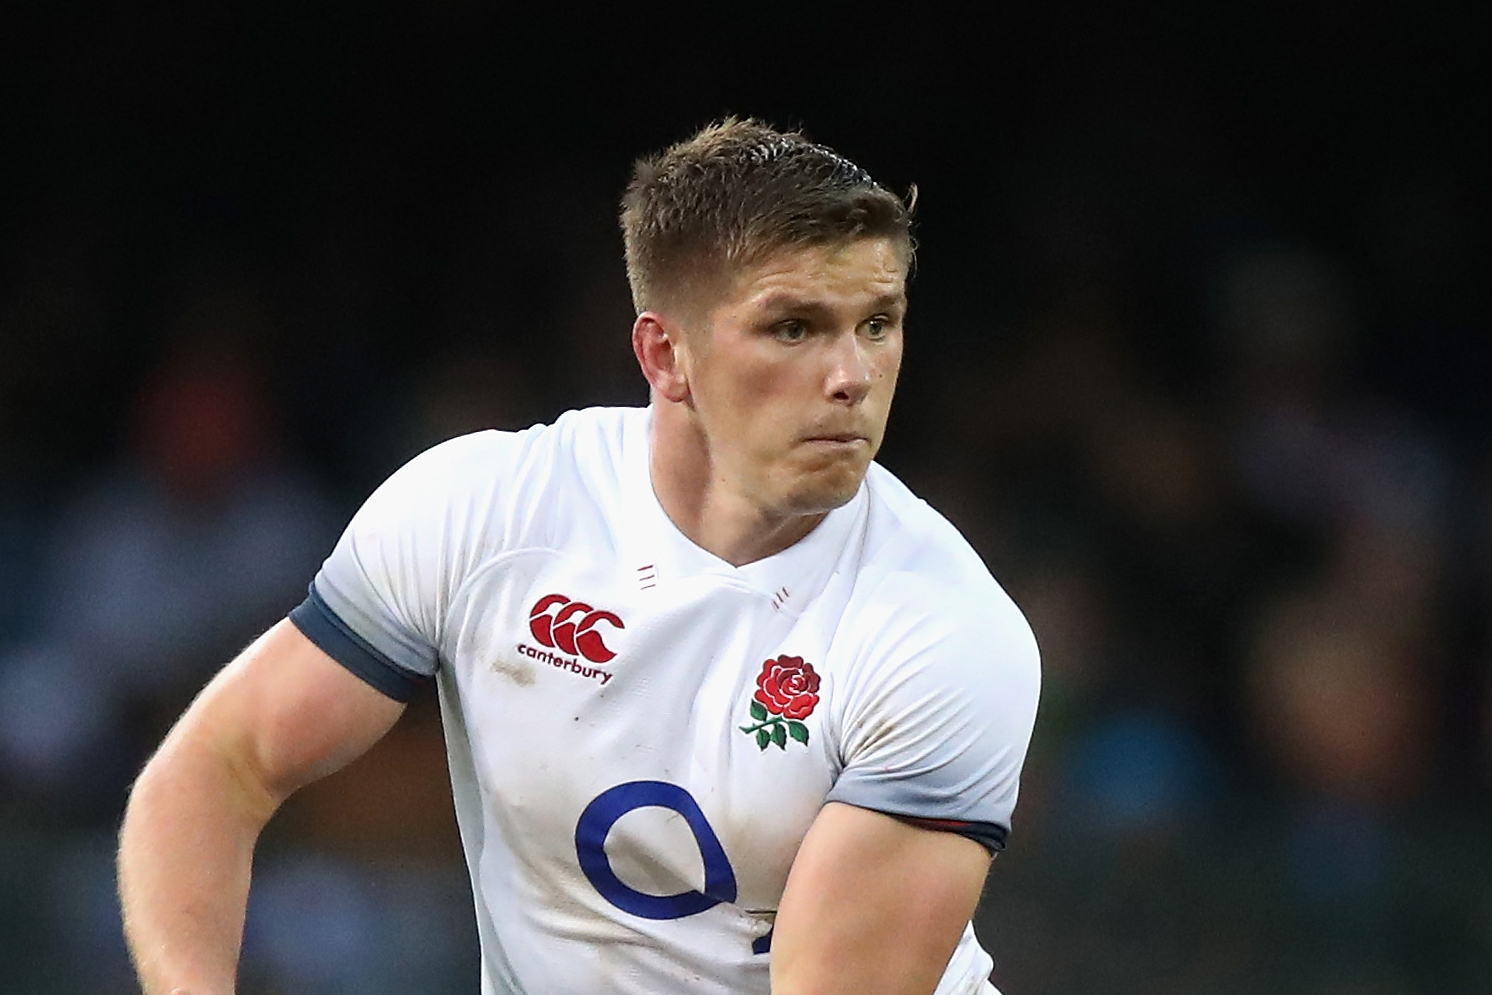 Rugby autumn internationals 2018 live on TV: full fixture list and channel coverage guide